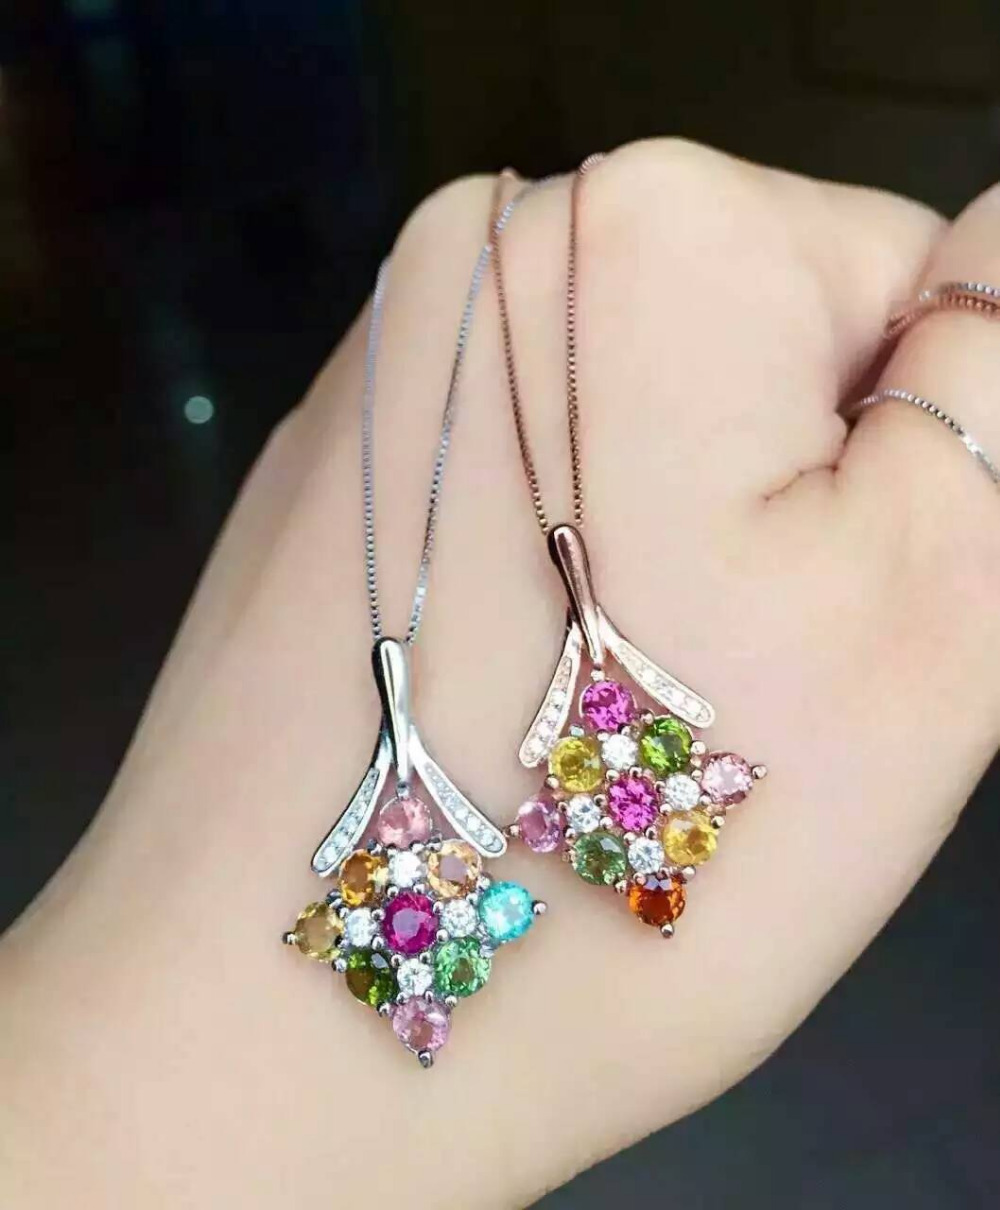 natural multicolor tourmaline pendant S925 silver Natural gemstone Pendant Necklace trendy Lucky torus Flowers women jewelry natural tourmaline pendant s925 silver natural gemstone pendant necklace elegant friendship boat lucky women girl gift jewelry